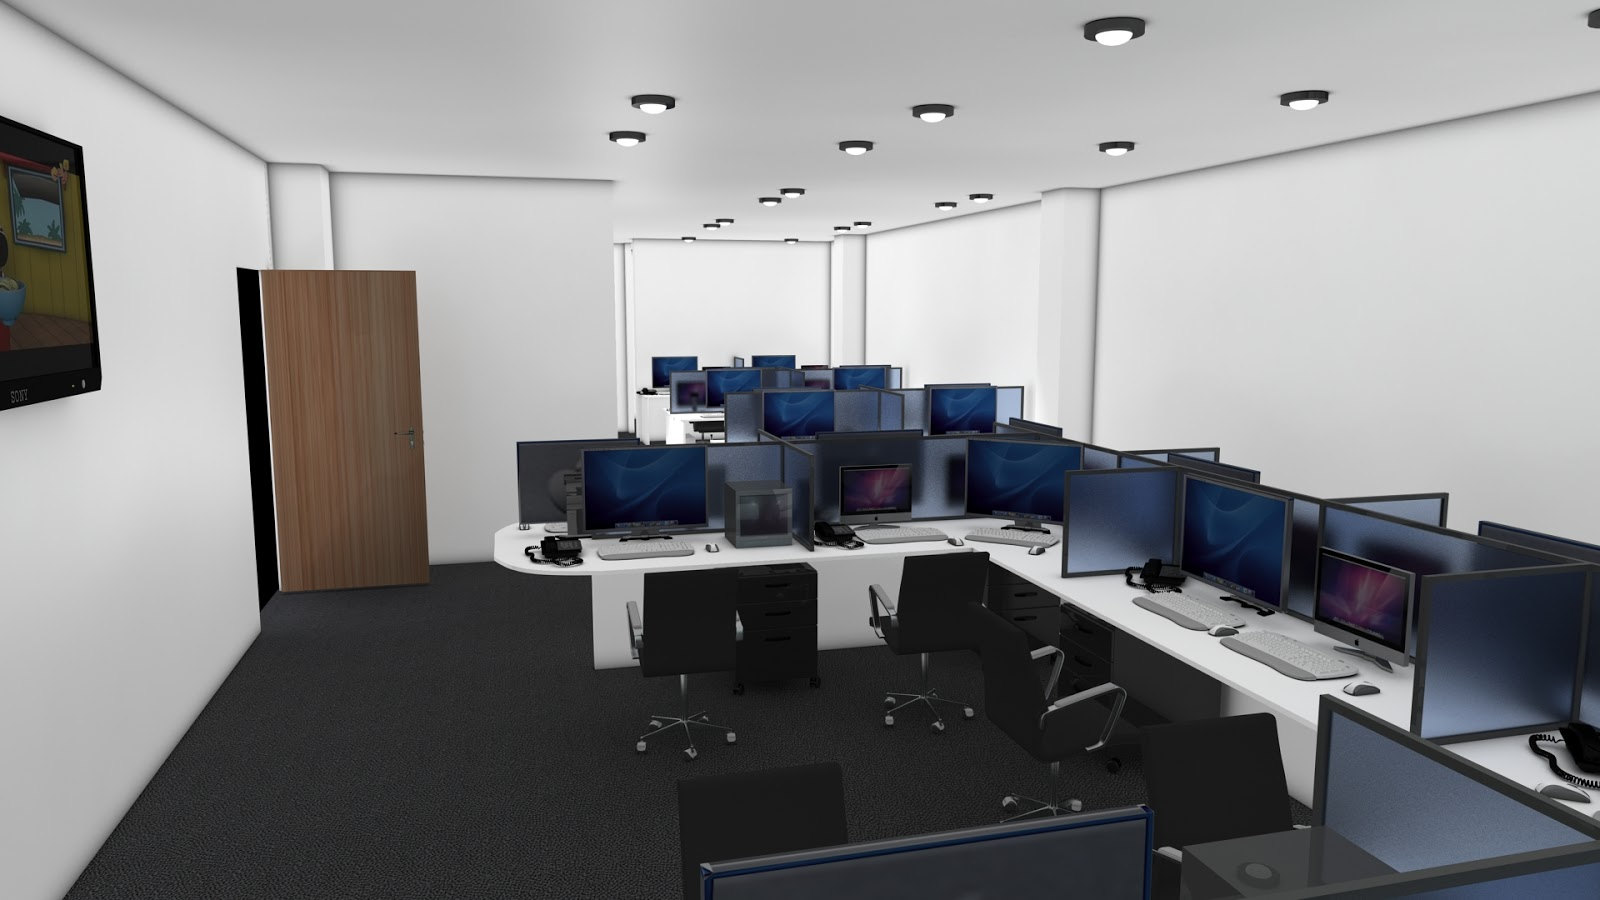 sajid designs office interior design 3d max